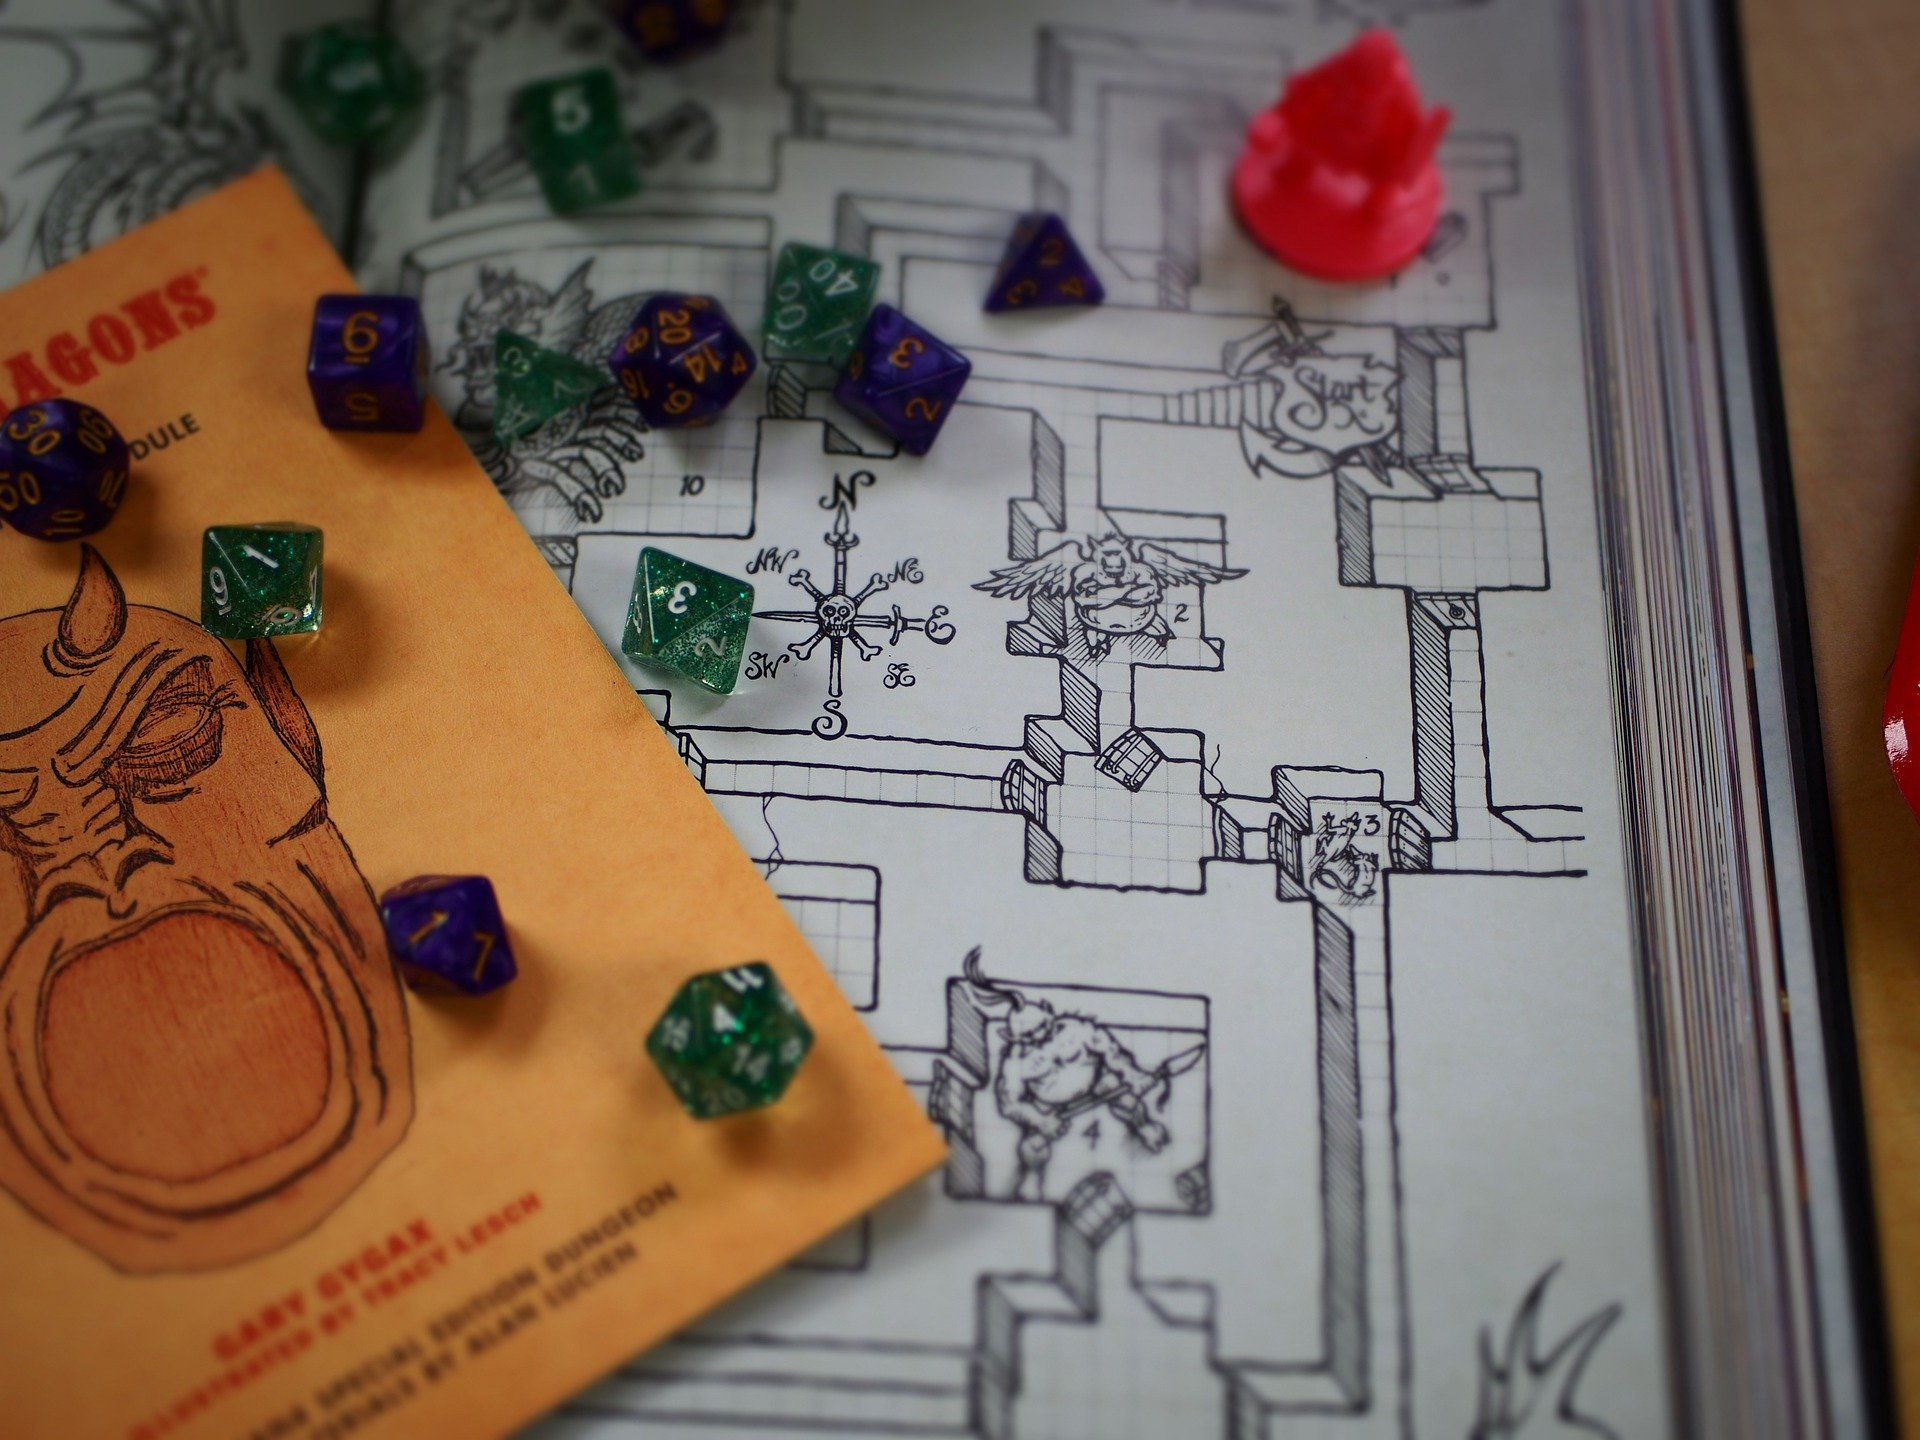 Tabletop role-playing games illustrated by Dungeons and Dragons dice and board.